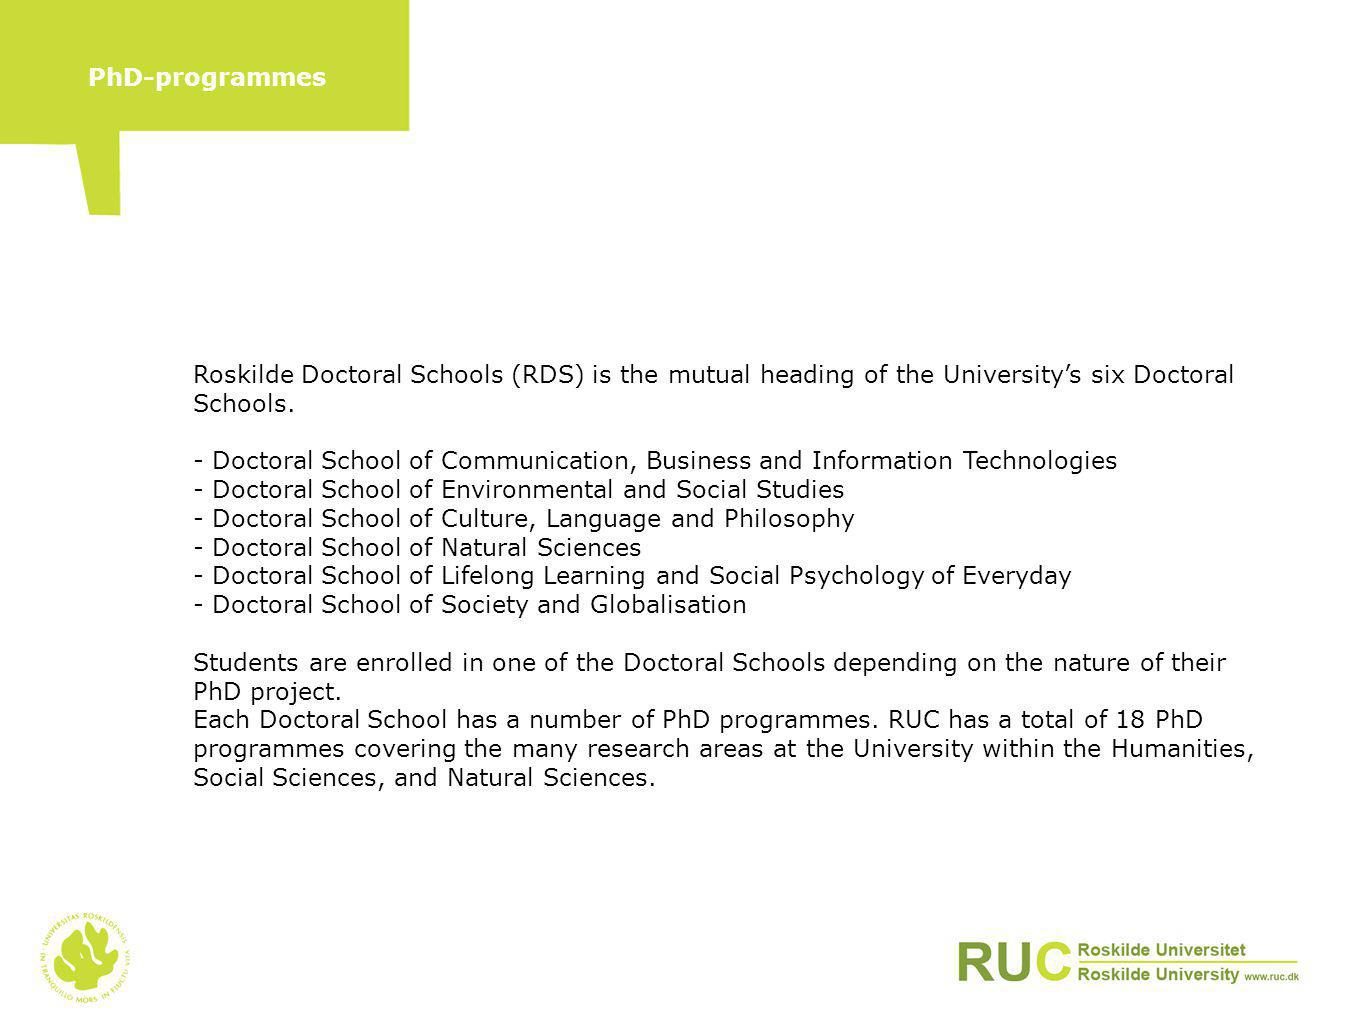 Roskilde Doctoral Schools (RDS) is the mutual heading of the University's six Doctoral Schools. - Doctoral School of Communication, Business and Infor